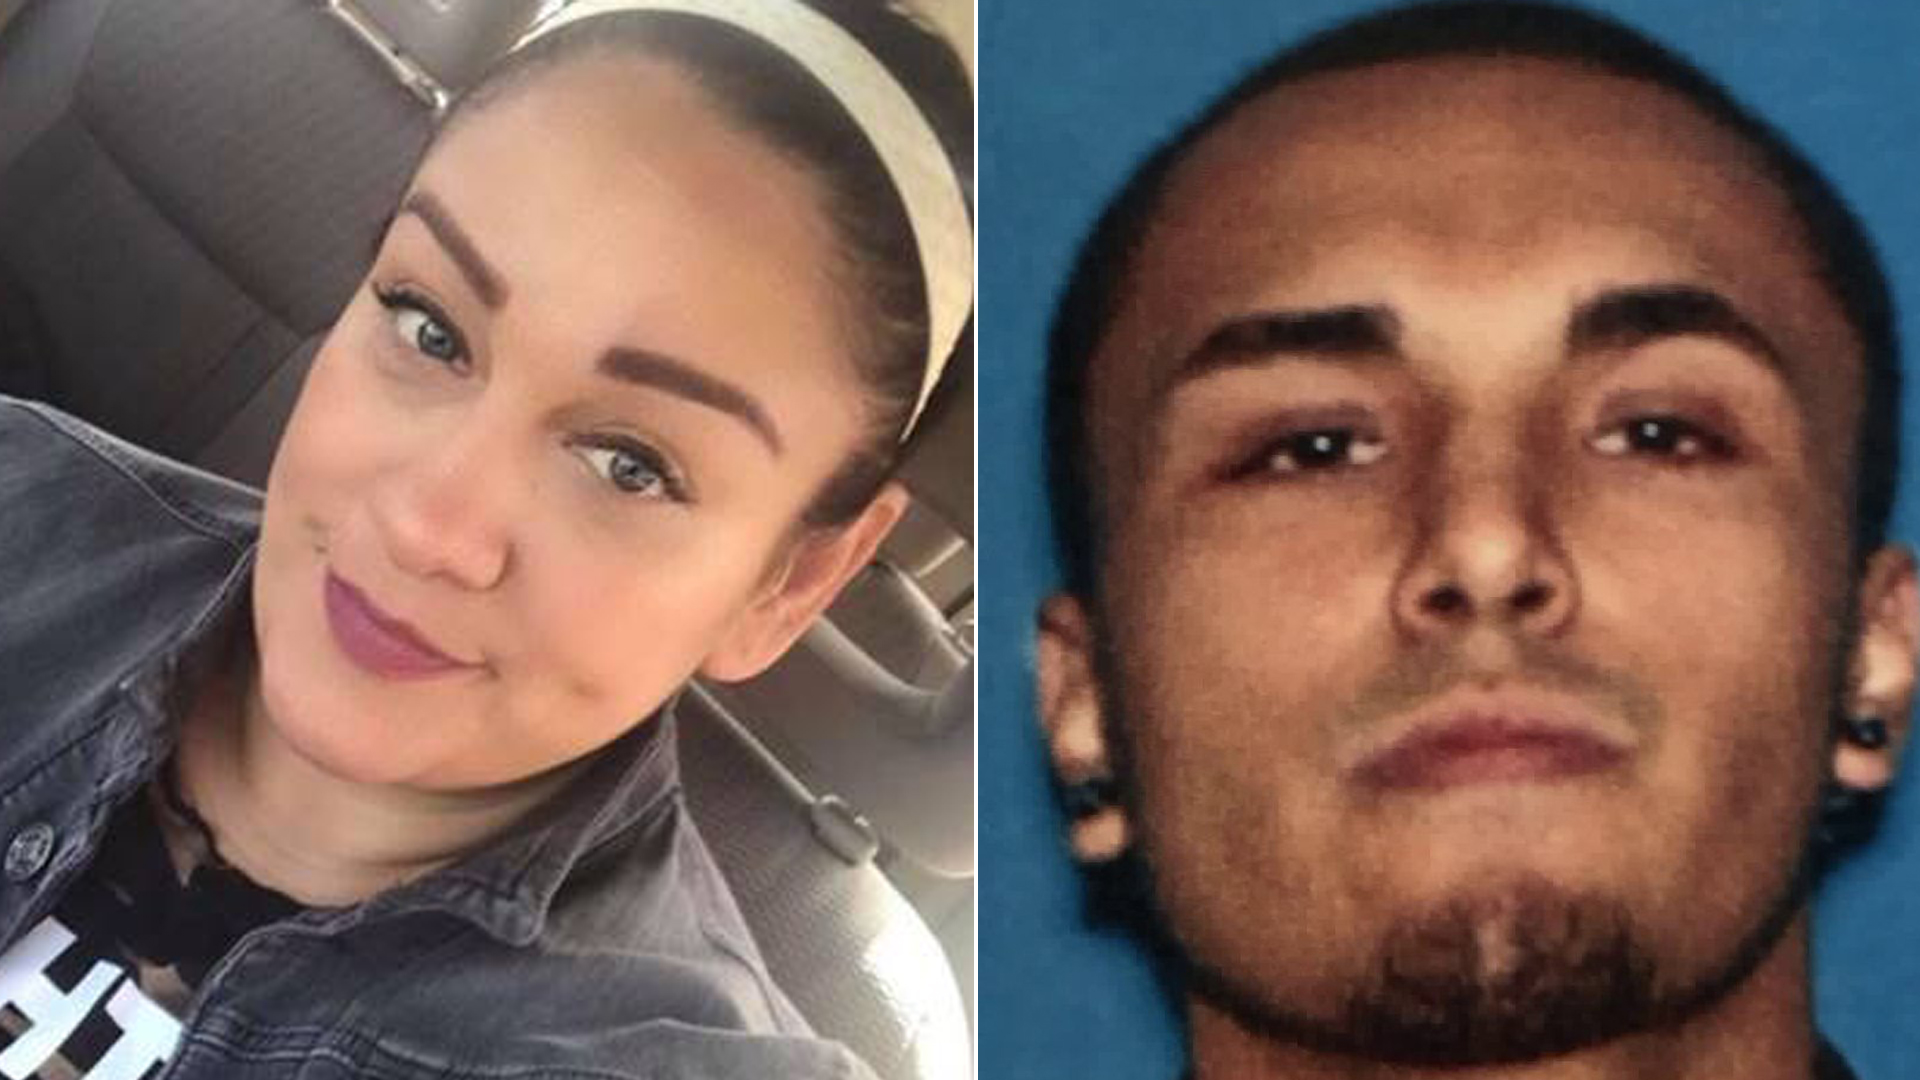 On the right, Azucena Lepe, 45, is seen in a photo posted to Facebook, and Gerry Zaragoza is seen in an image released by the Los Angeles Police Department.